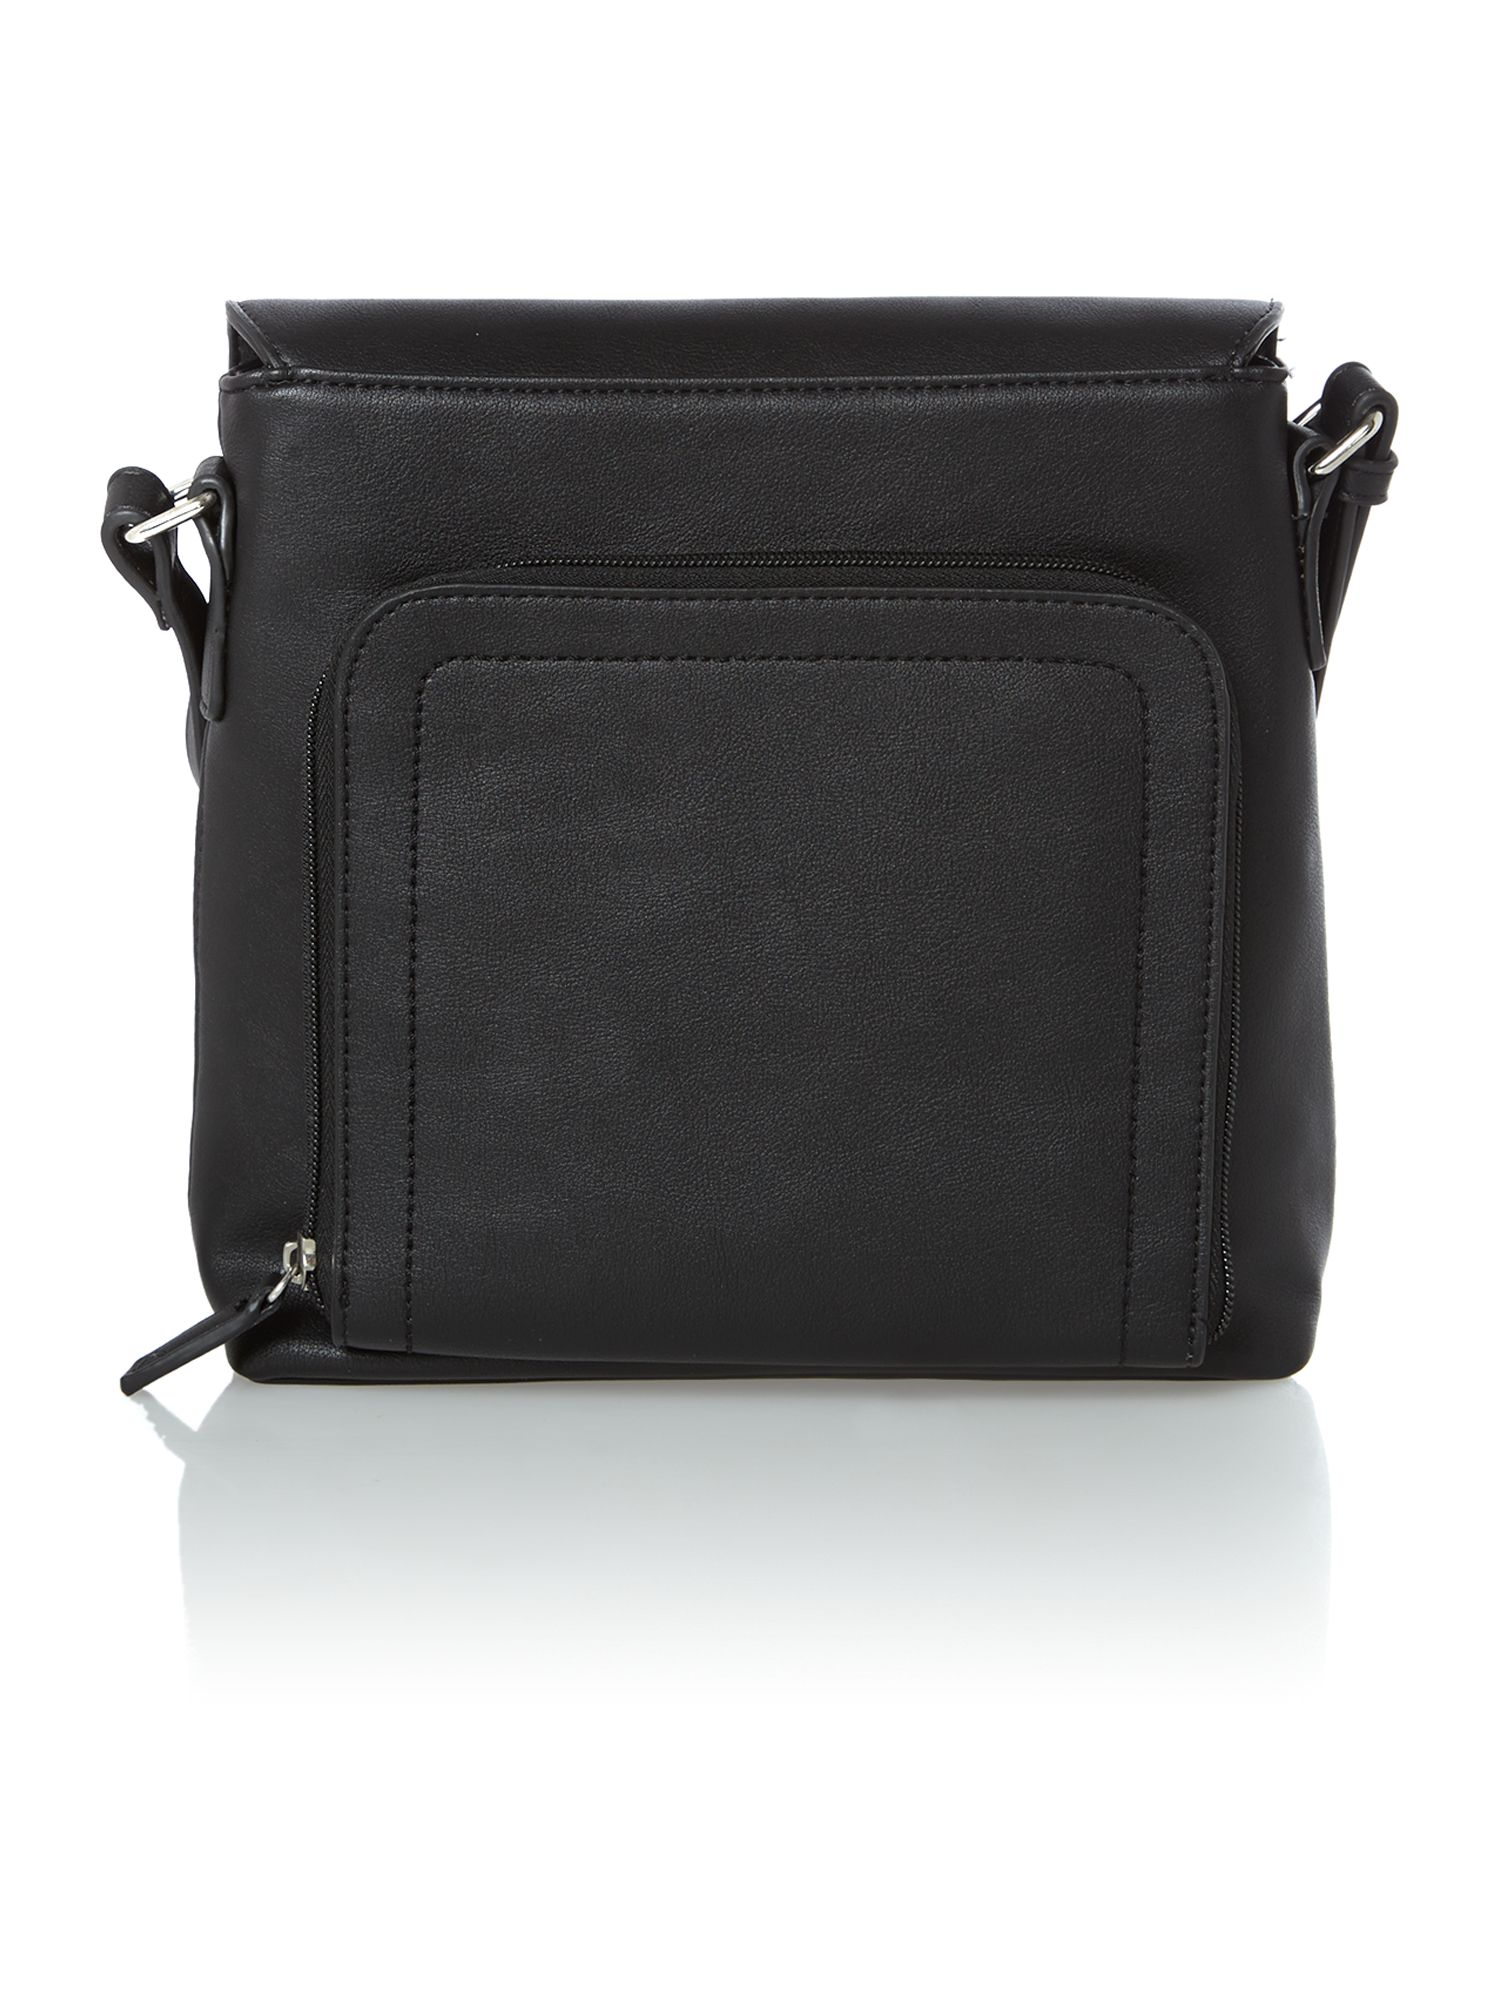 Carey black cross body bag